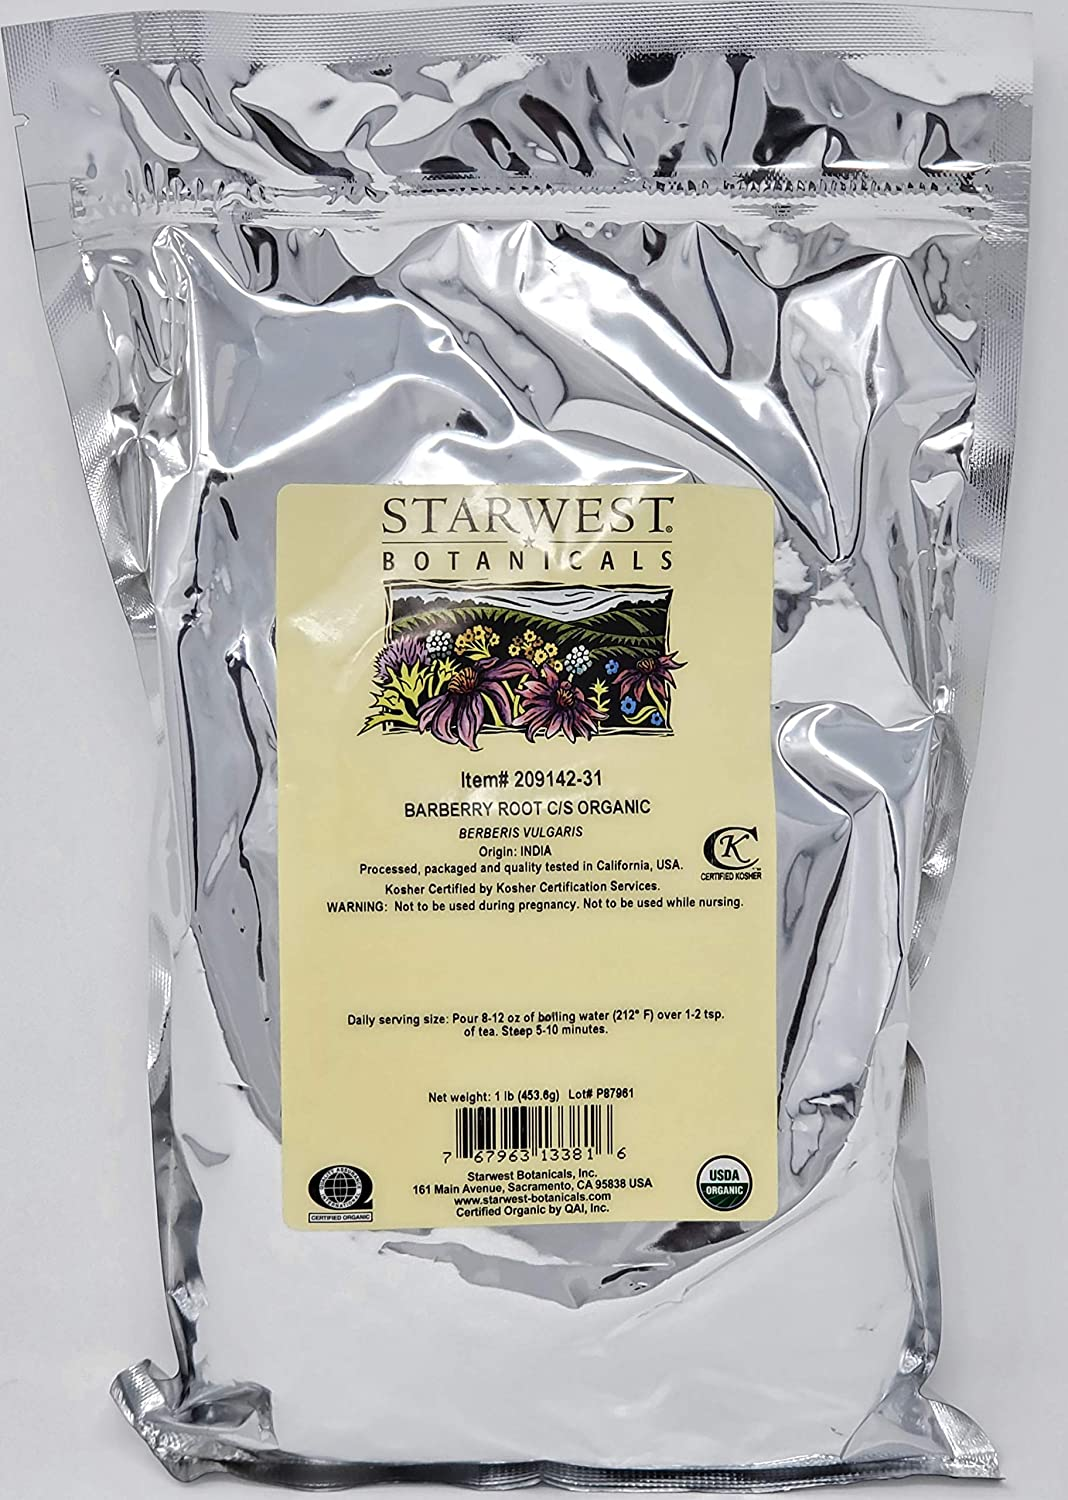 Organic Barberry Root Cut and Botanicals lb Starwest Sifted Super Special Tulsa Mall SALE held -1